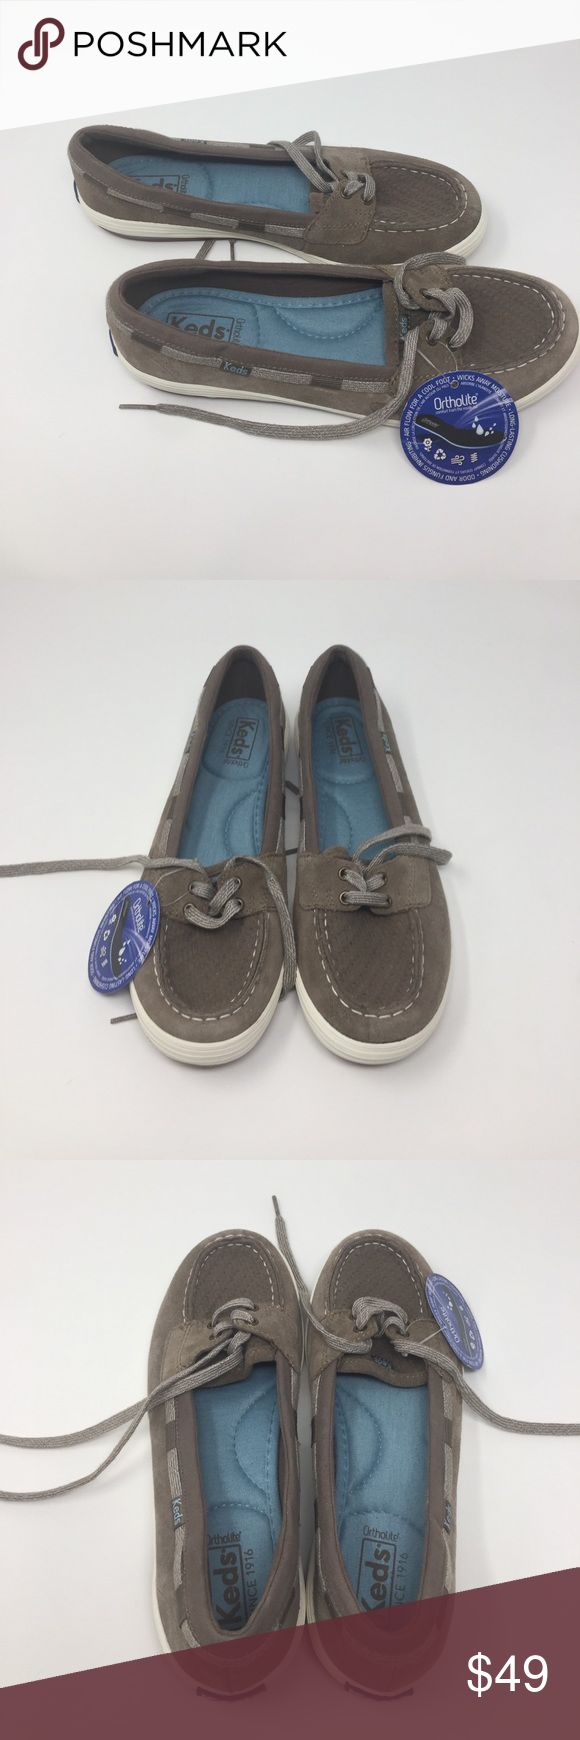 Women's keds glimmer slip on boat shoe size8 a2box These are women's shoes new without box or tags in real good condition keds women glimmer slip on boat shoe tan wh55879 e16-61419 size 8 keds Shoes Flats & Loafers